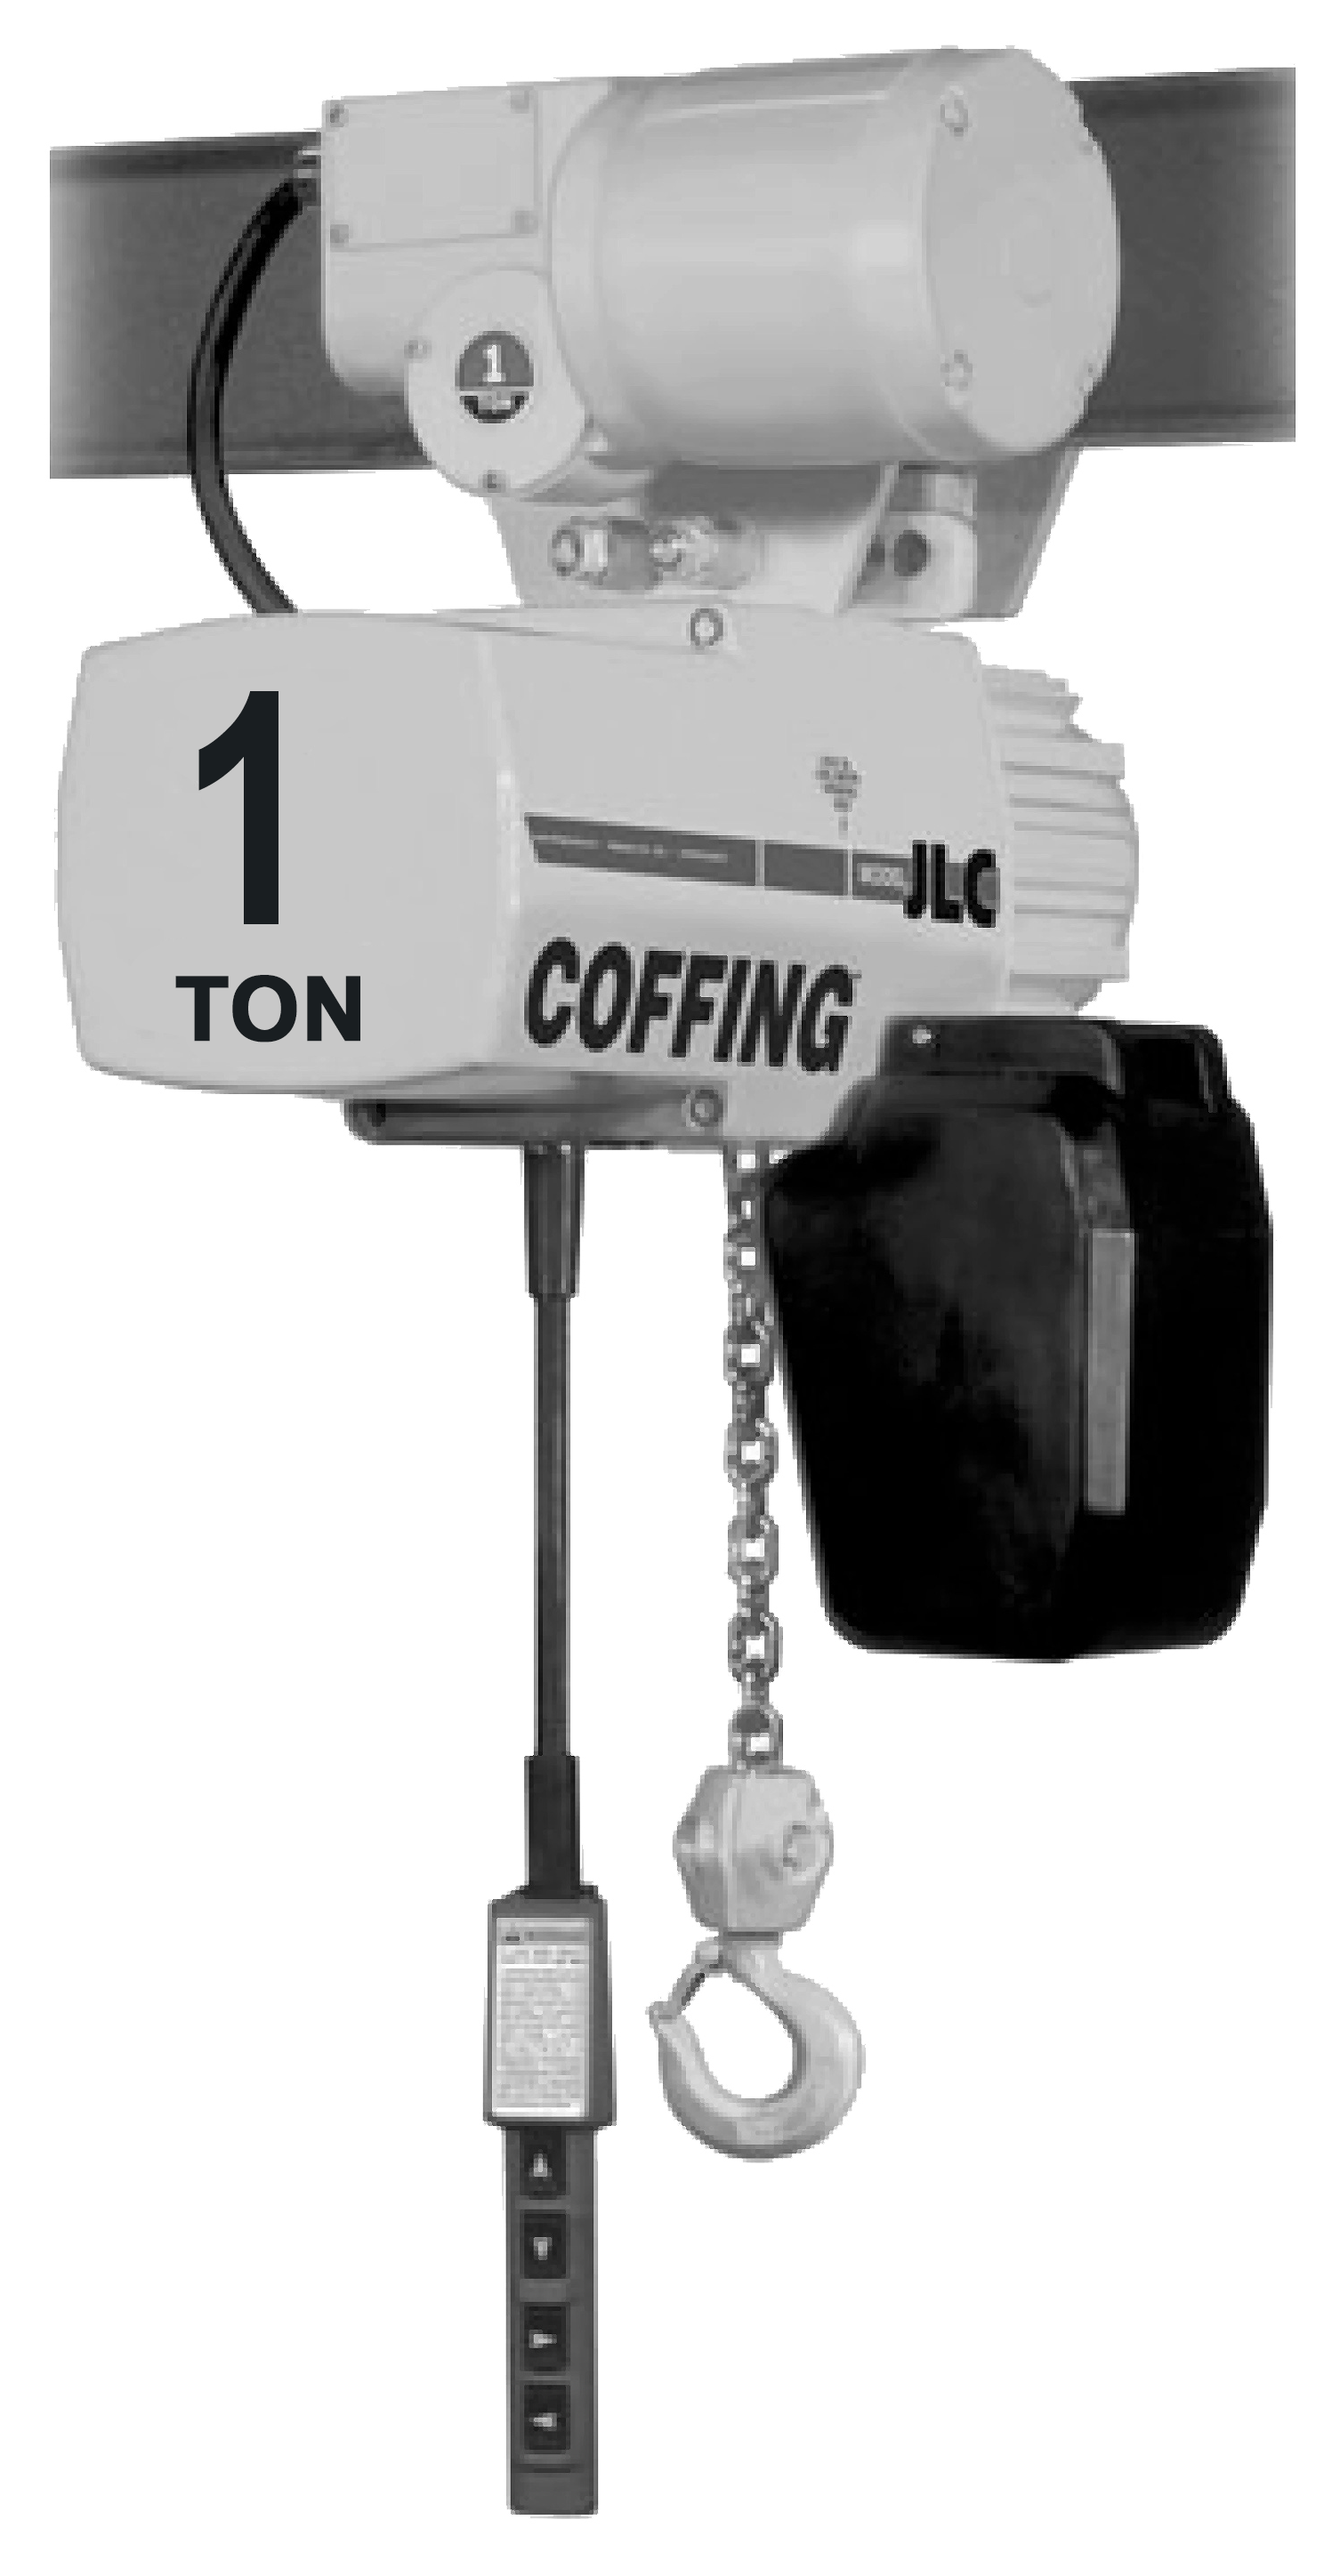 1-Ton Coffing JLC Electric Chain Hoist with Motorized Trolley